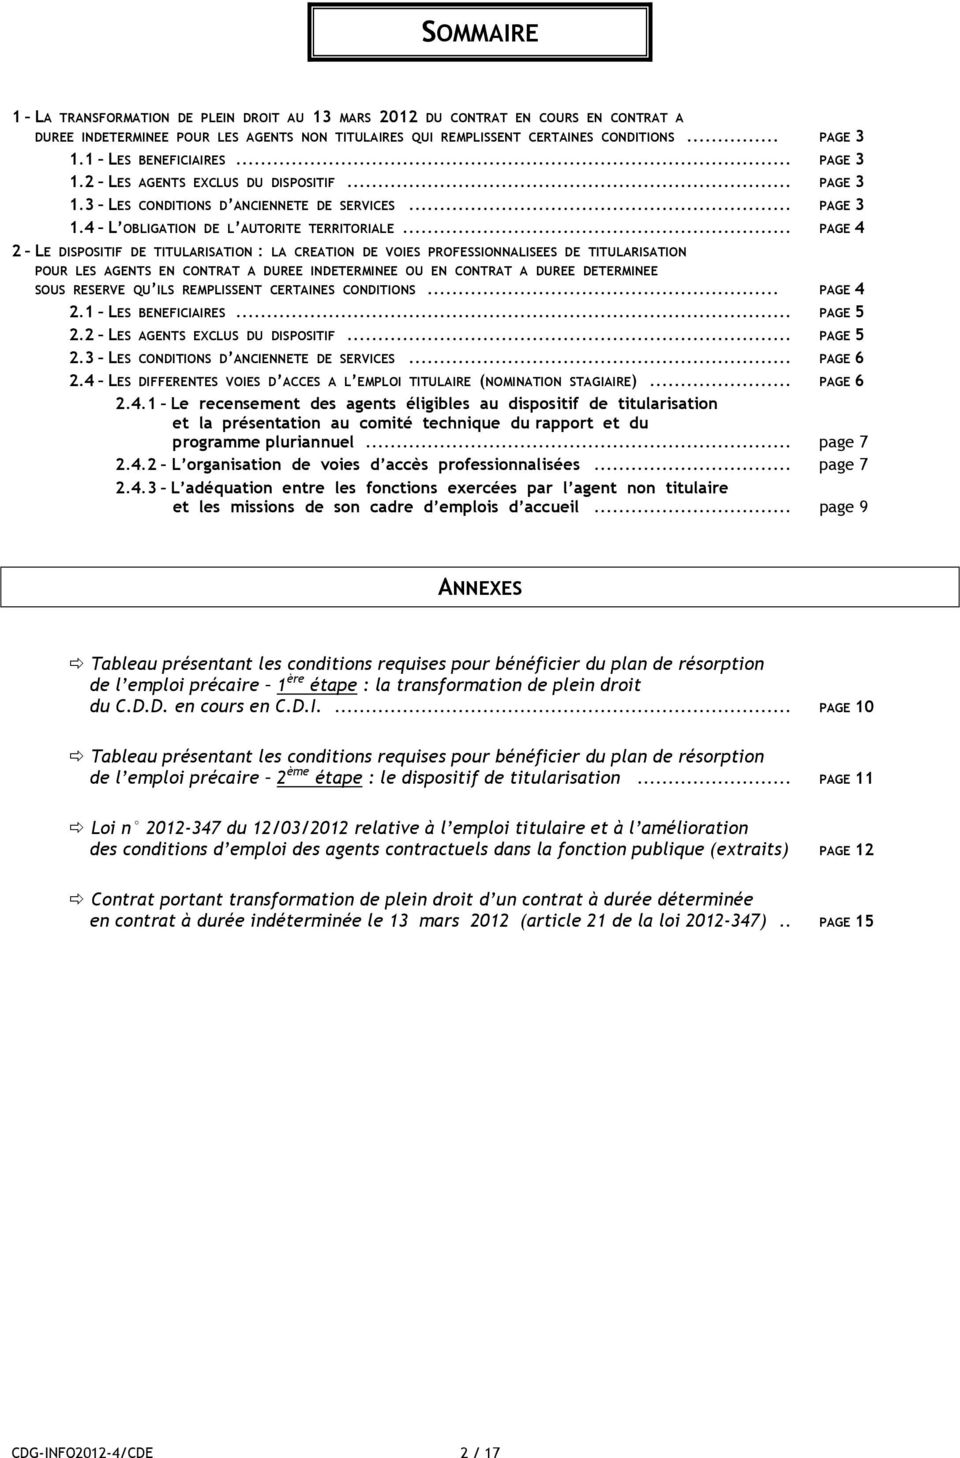 .. PAGE 4 2 LE DISPOSITIF DE TITULARISATION : LA CREATION DE VOIES PROFESSIONNALISEES DE TITULARISATION POUR LES AGENTS EN CONTRAT A DUREE INDETERMINEE OU EN CONTRAT A DUREE DETERMINEE SOUS RESERVE